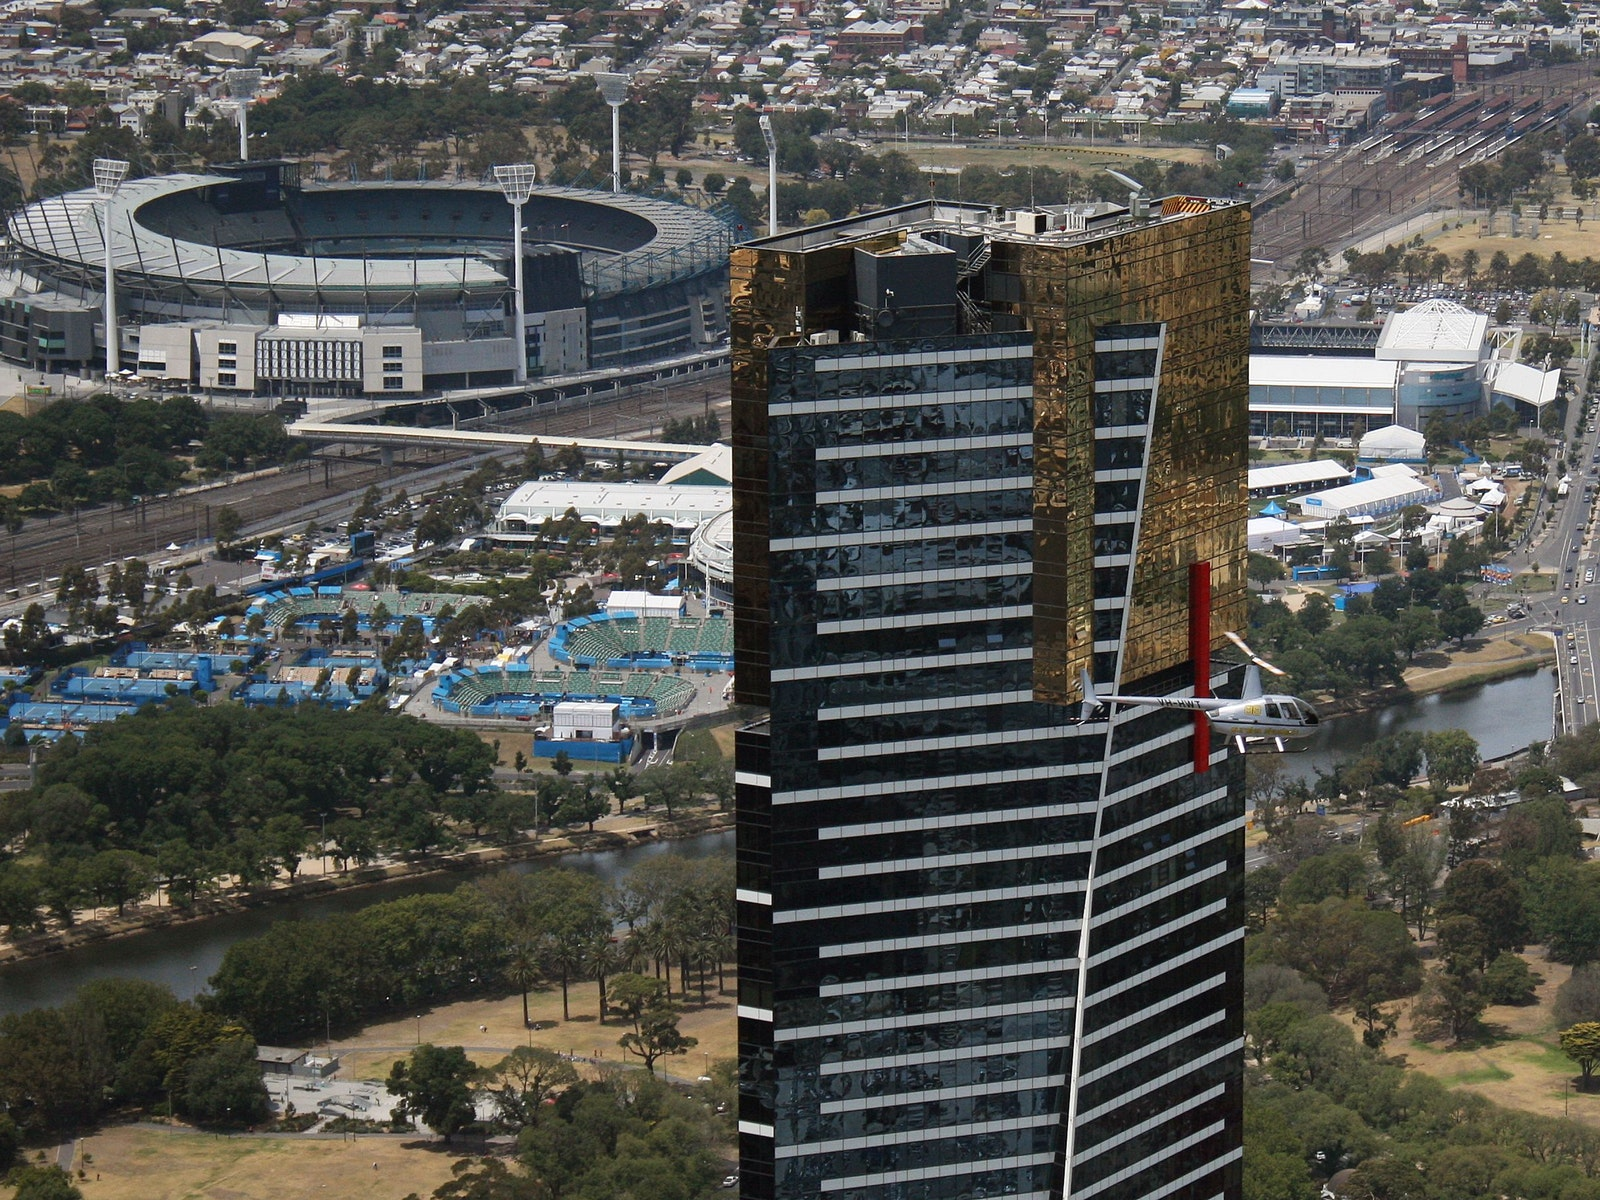 The MCG and Eureka Building seen from the helicopter